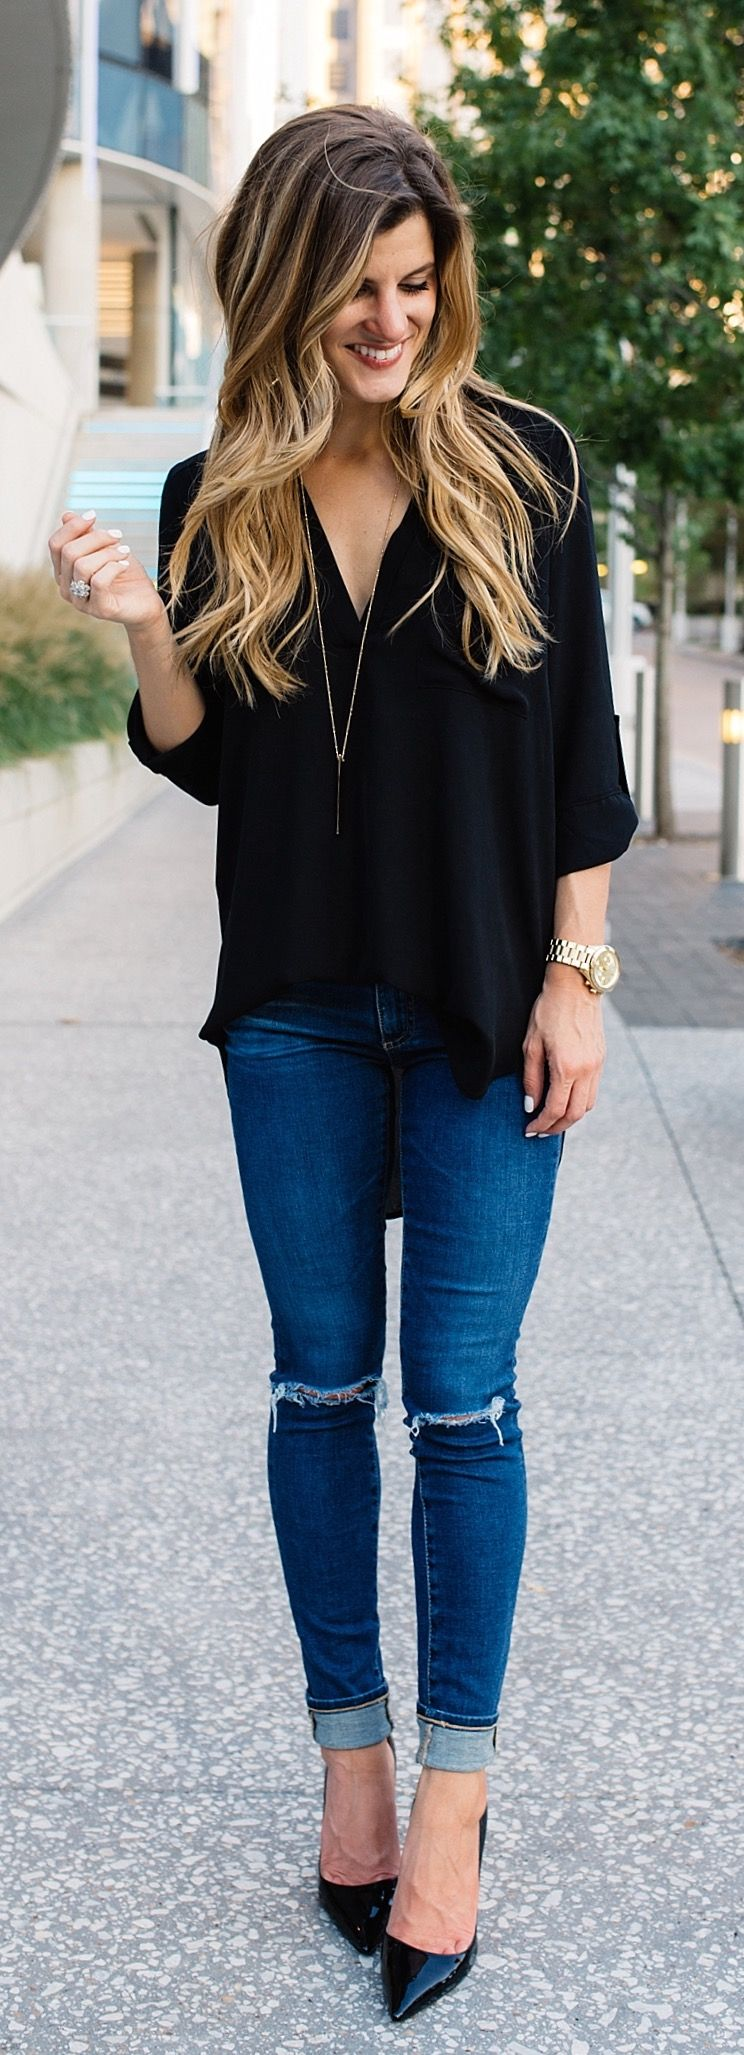 3 Reasons to Love It u0026 3 Ways To Wear It | Pinterest ...